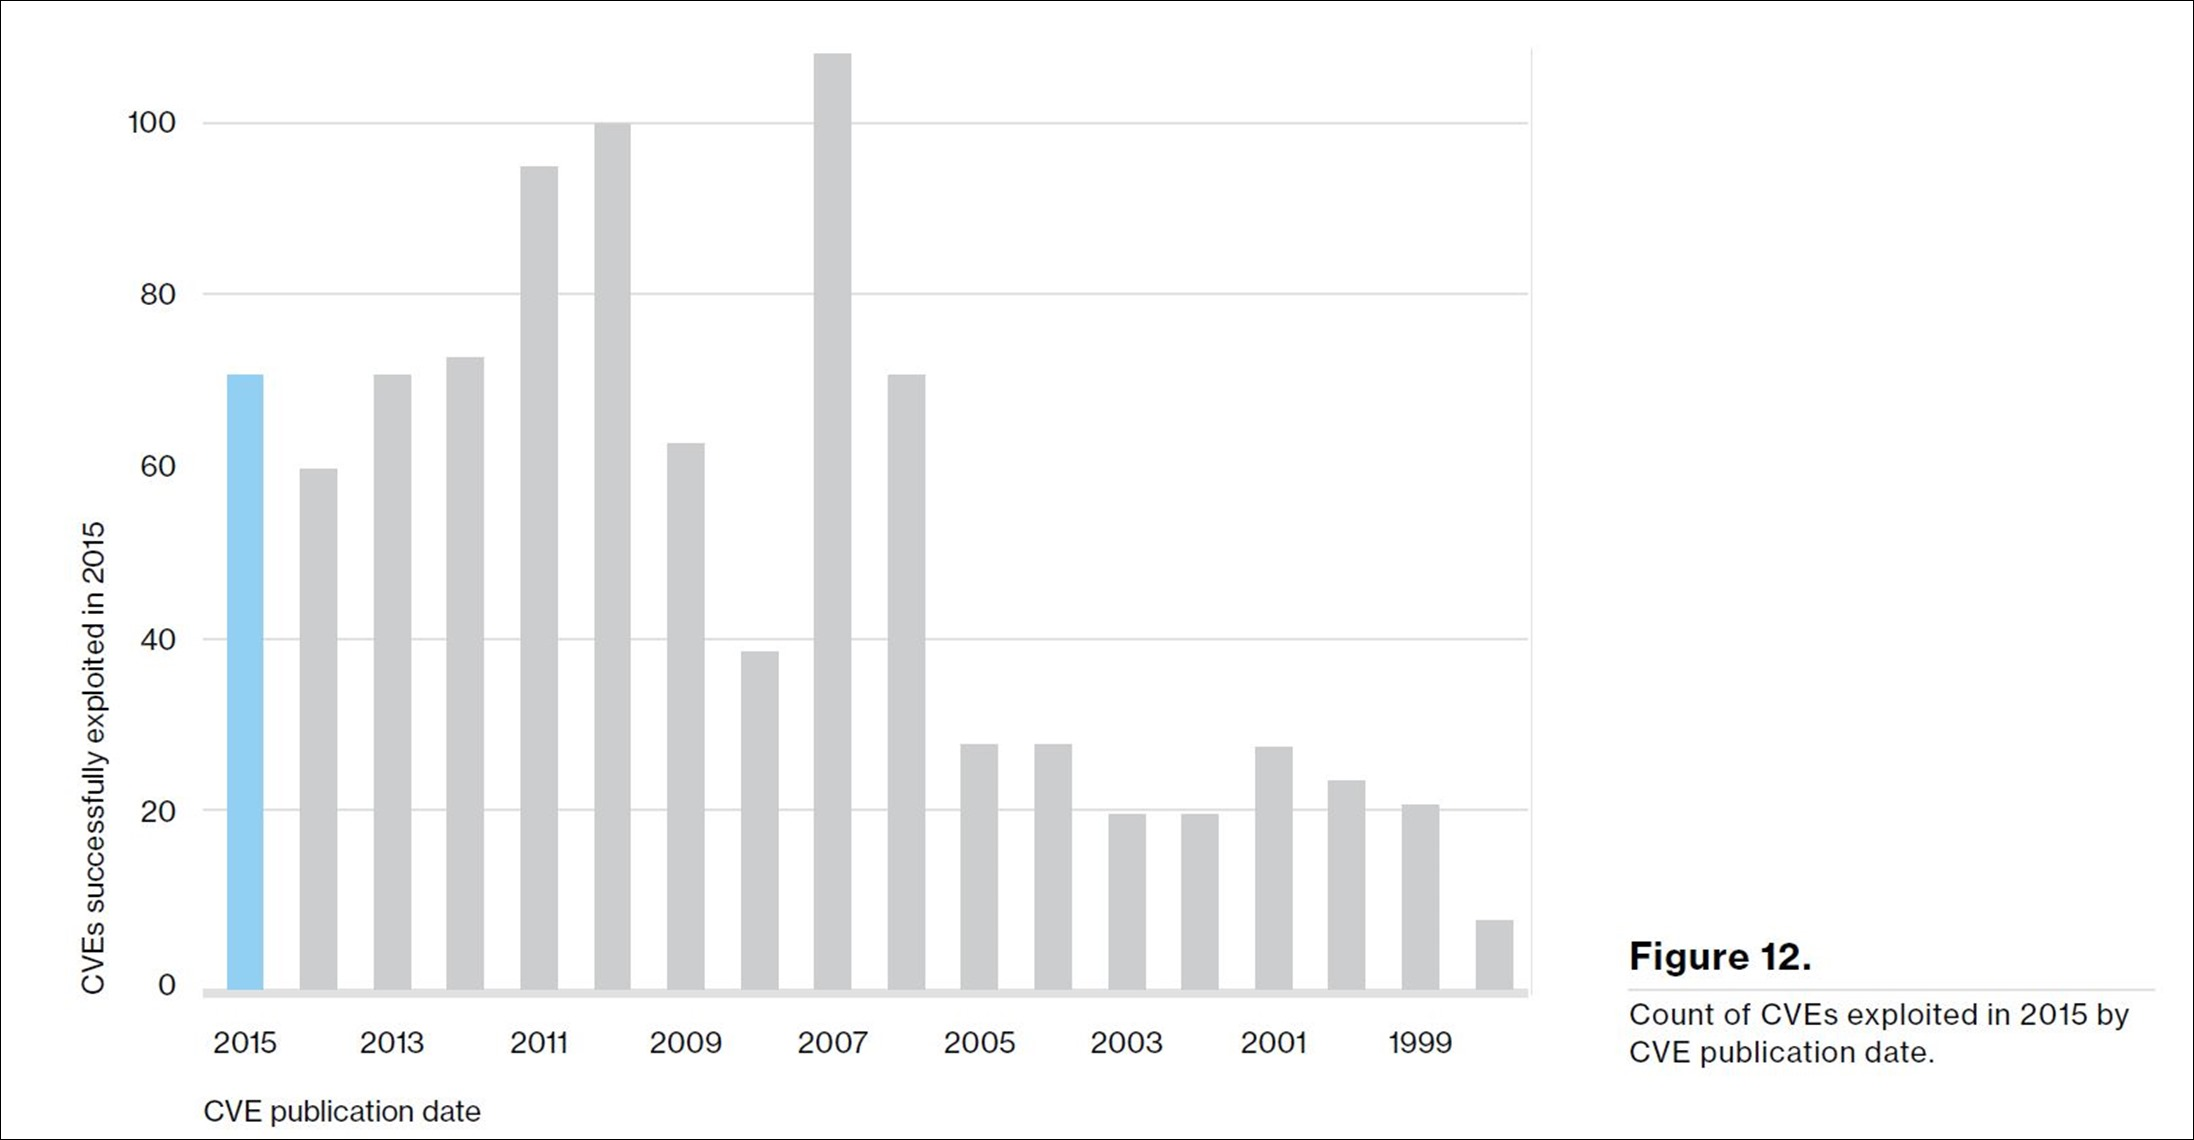 Graph showing count of CVEs exploited in 2015 by CVE publication date showing a large number of vulnerabilities from prior to 2015 still exploited in 2015